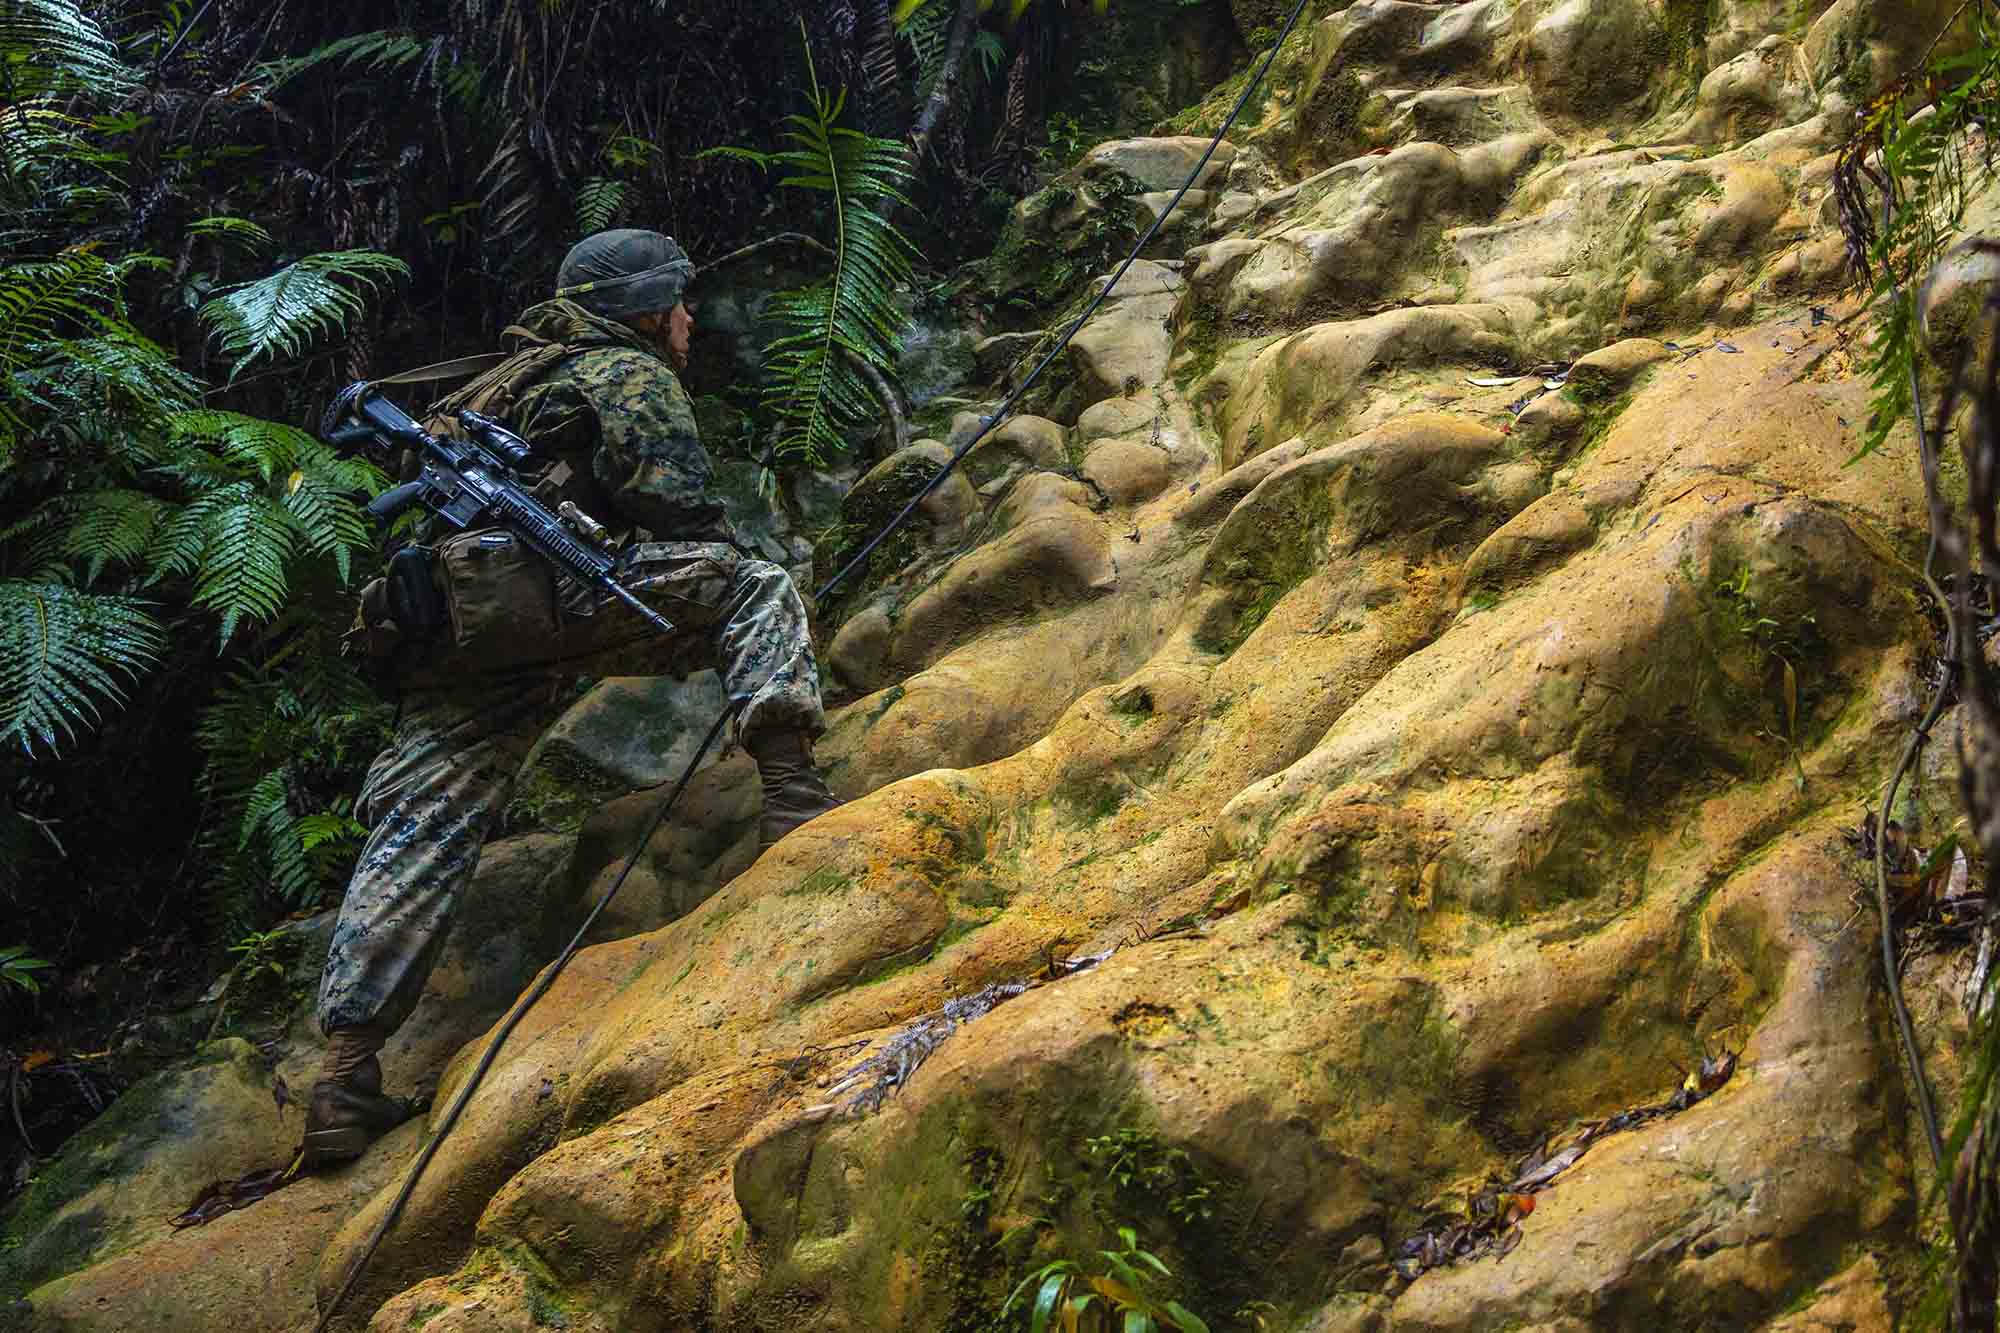 U.S. Marine Corps Lance Cpl. Ethan Sawyer conducts route reconnaissance during the 3d Marine Division Rifle Squad Competition at Camp Gonsalves, Okinawa, Japan, Jan. 11, 2021. (Lance Cpl. Scott Aubuchon/Marine Corps)